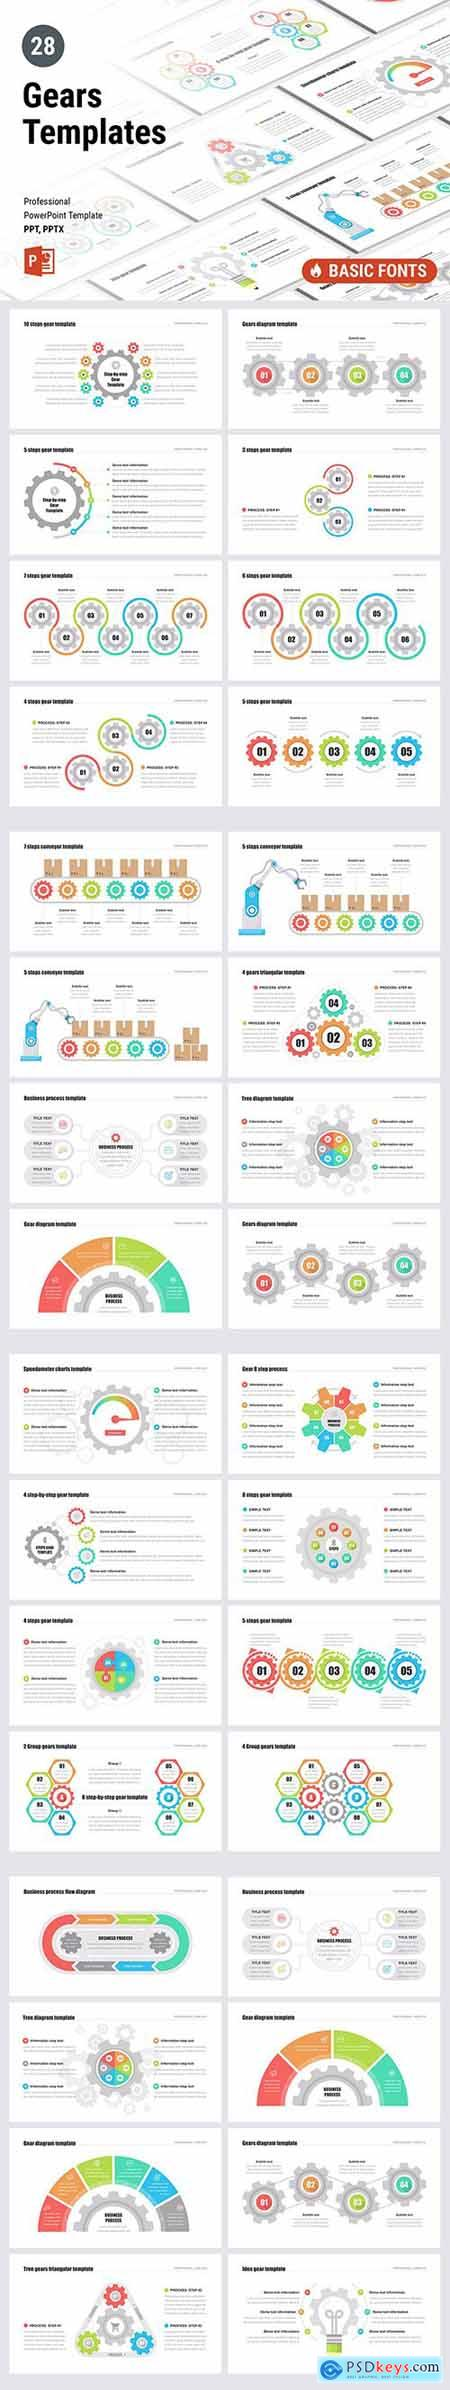 Gears PowerPoint, Keynote and Google Sliders Templates